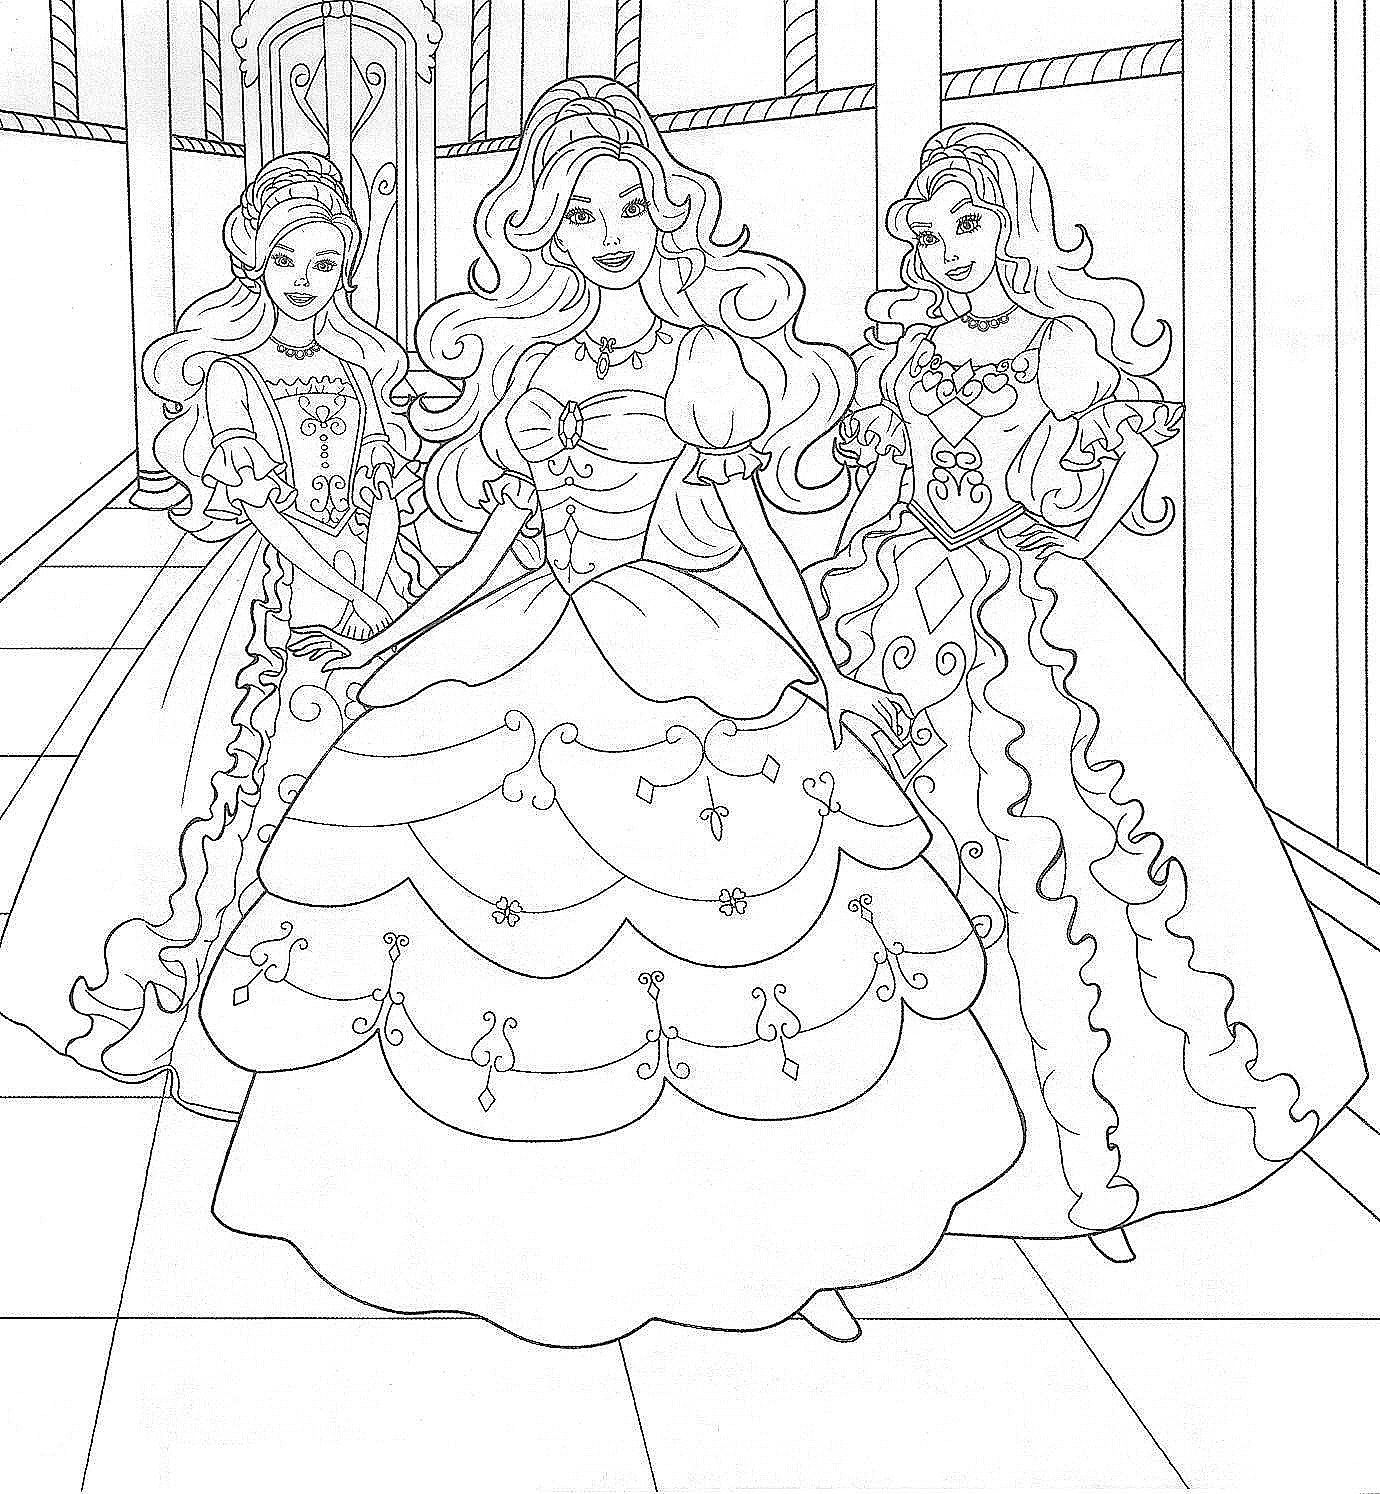 Children Love To Portray Characters In Their Paintings Barbie Coloring Pages Fill With Interesting